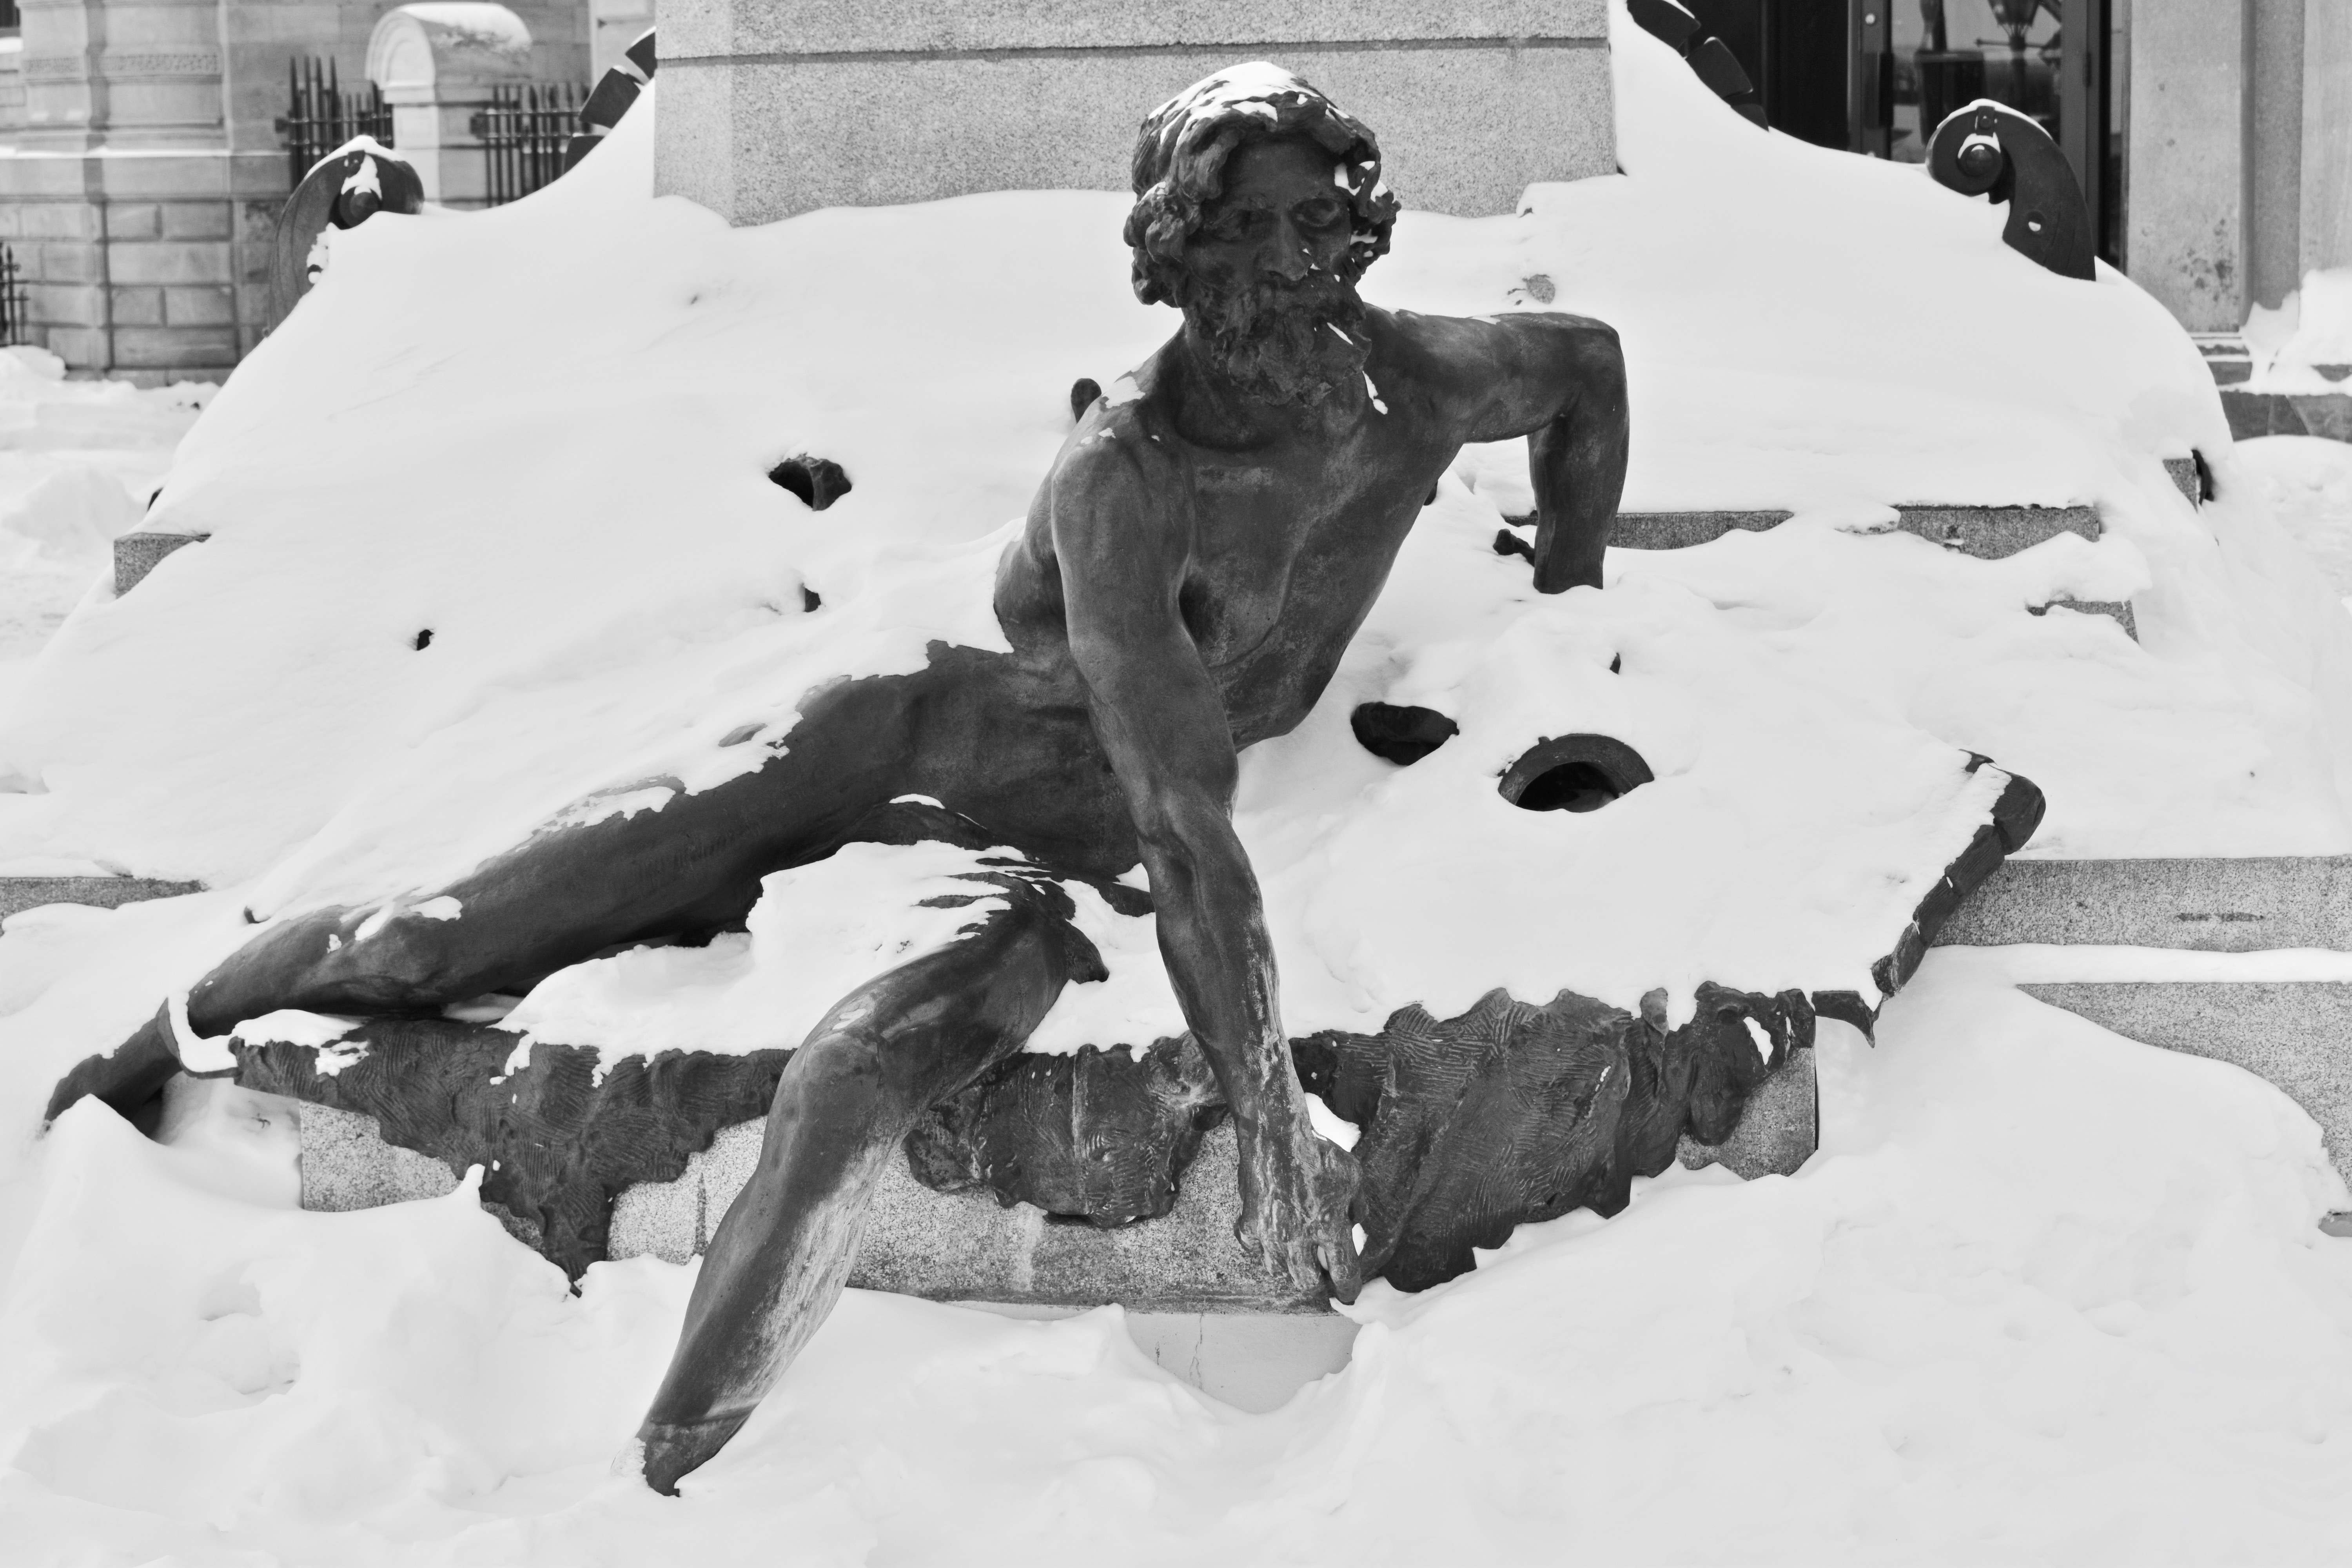 Sculpture in Old Montreal covered in snow. It's the weekend number 32